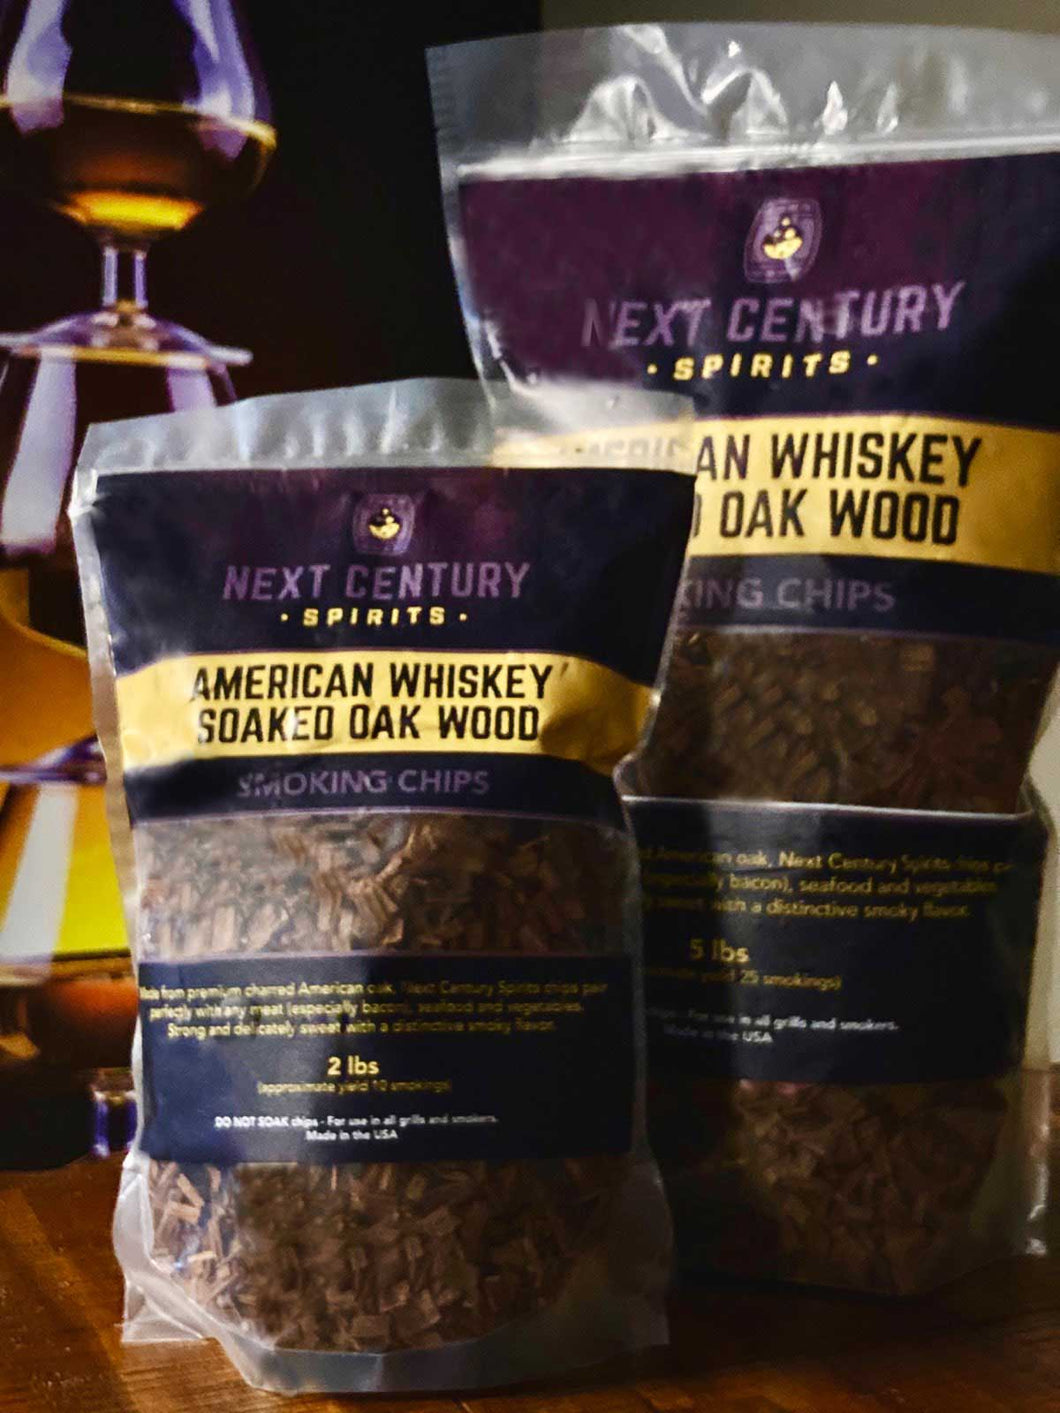 American Whiskey Soaked Oak Wood Smoking Chips - Combo Gift Pack